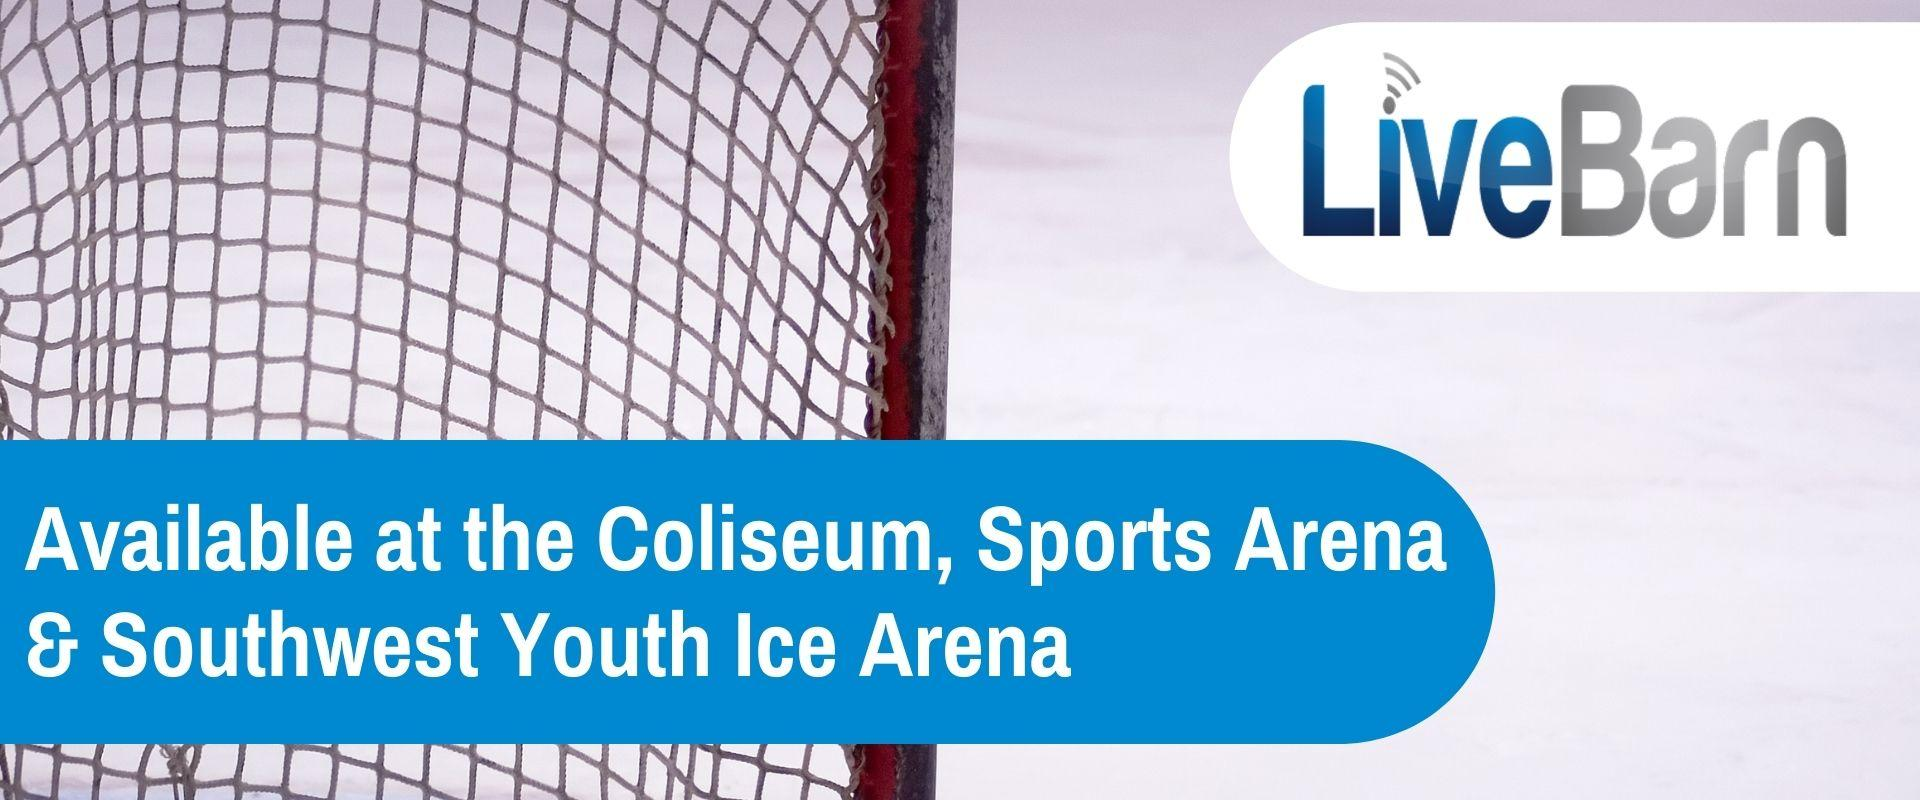 This image shows a sheet of ice. In the left bottom corner it says LiveBarn now available at the Coliseum, Sports Arena and Southwest Youth Ice Arena. In the top right corner it has Live Barn's logo.